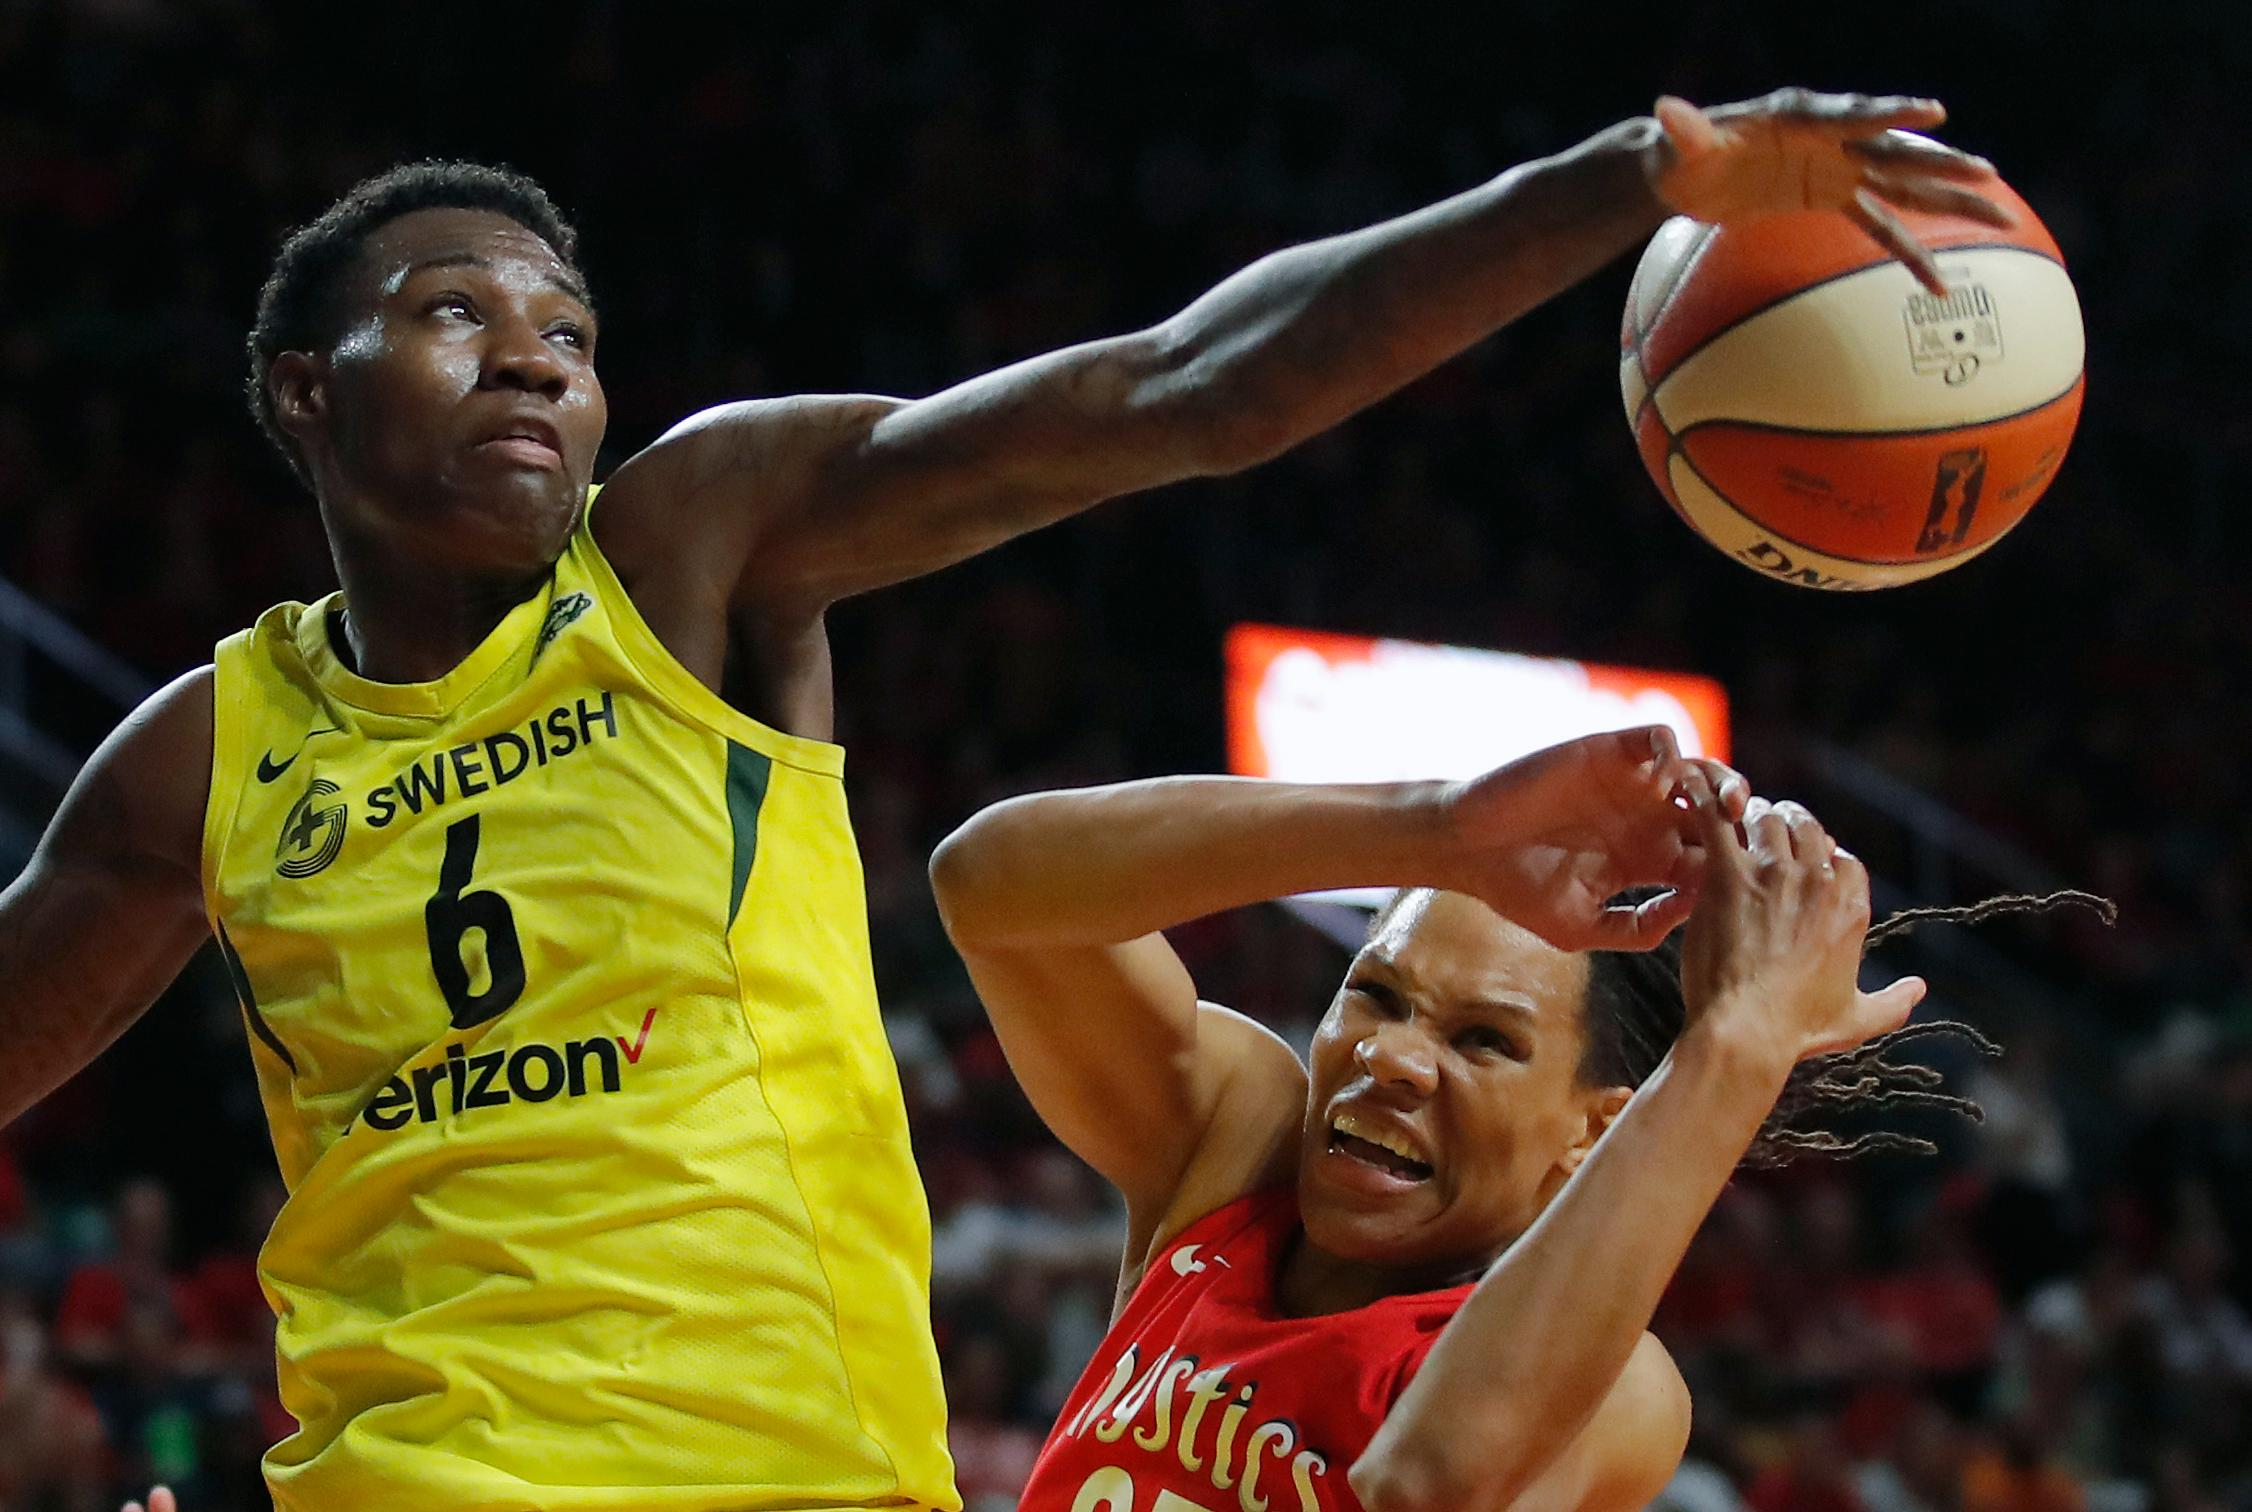 Seattle Storm forward Natasha Howard (6) and Washington Mystics forward Monique Currie (25) fight for the ball during the second half of Game 3 of the WNBA basketball finals, Wednesday, Sept. 18 2018, in Fairfax, Va. The Seattle Storm won 98-82. (AP Photo/Carolyn Kaster)